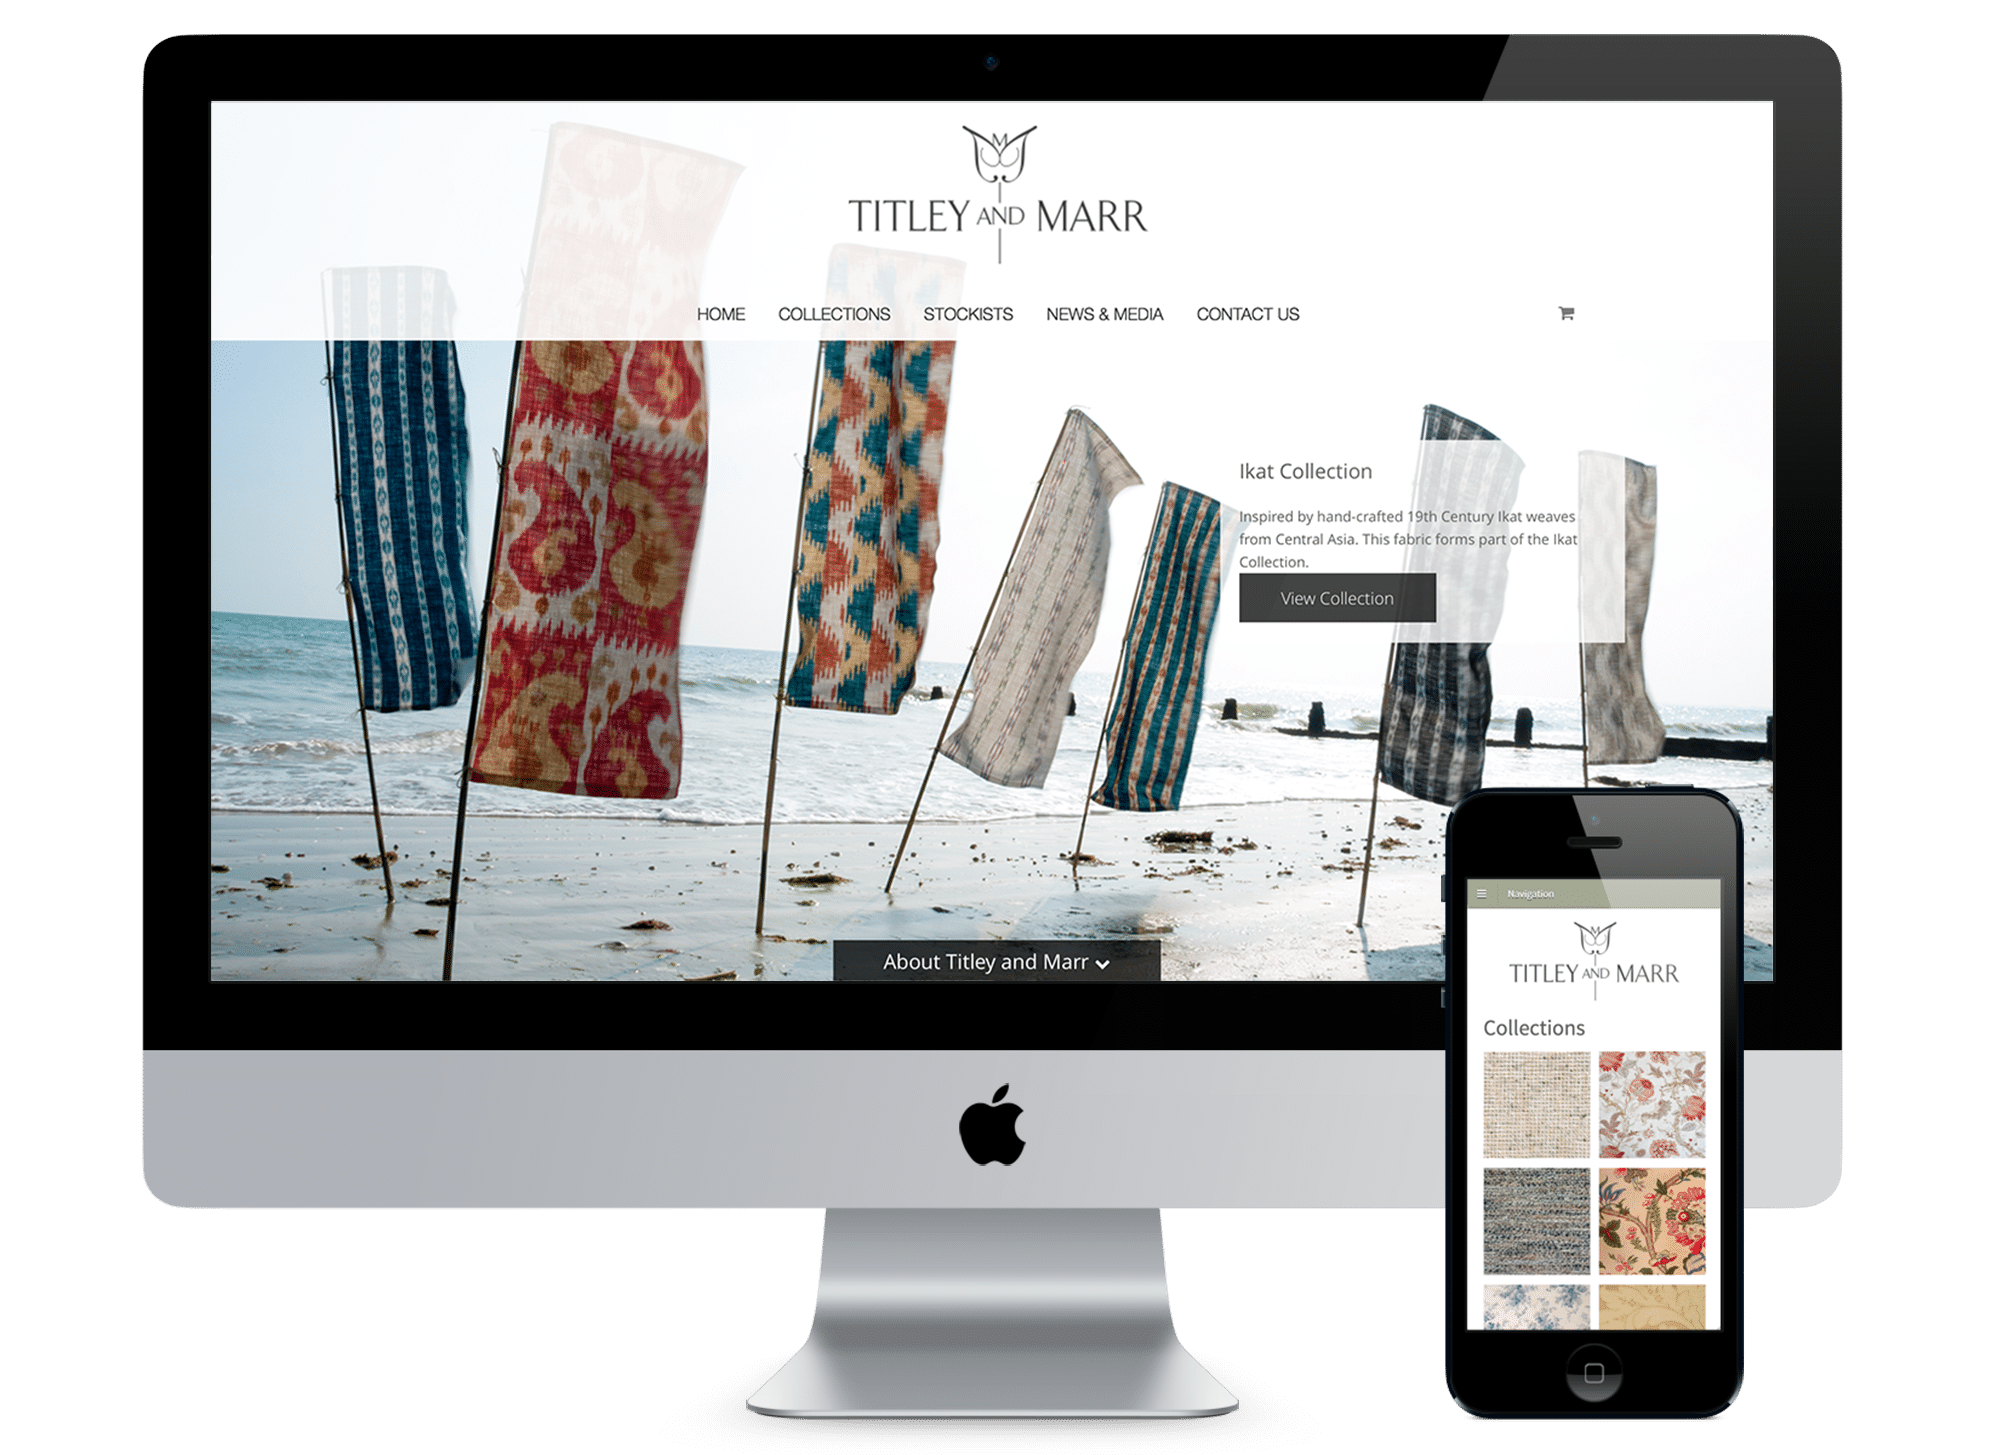 Titley and Marr Website